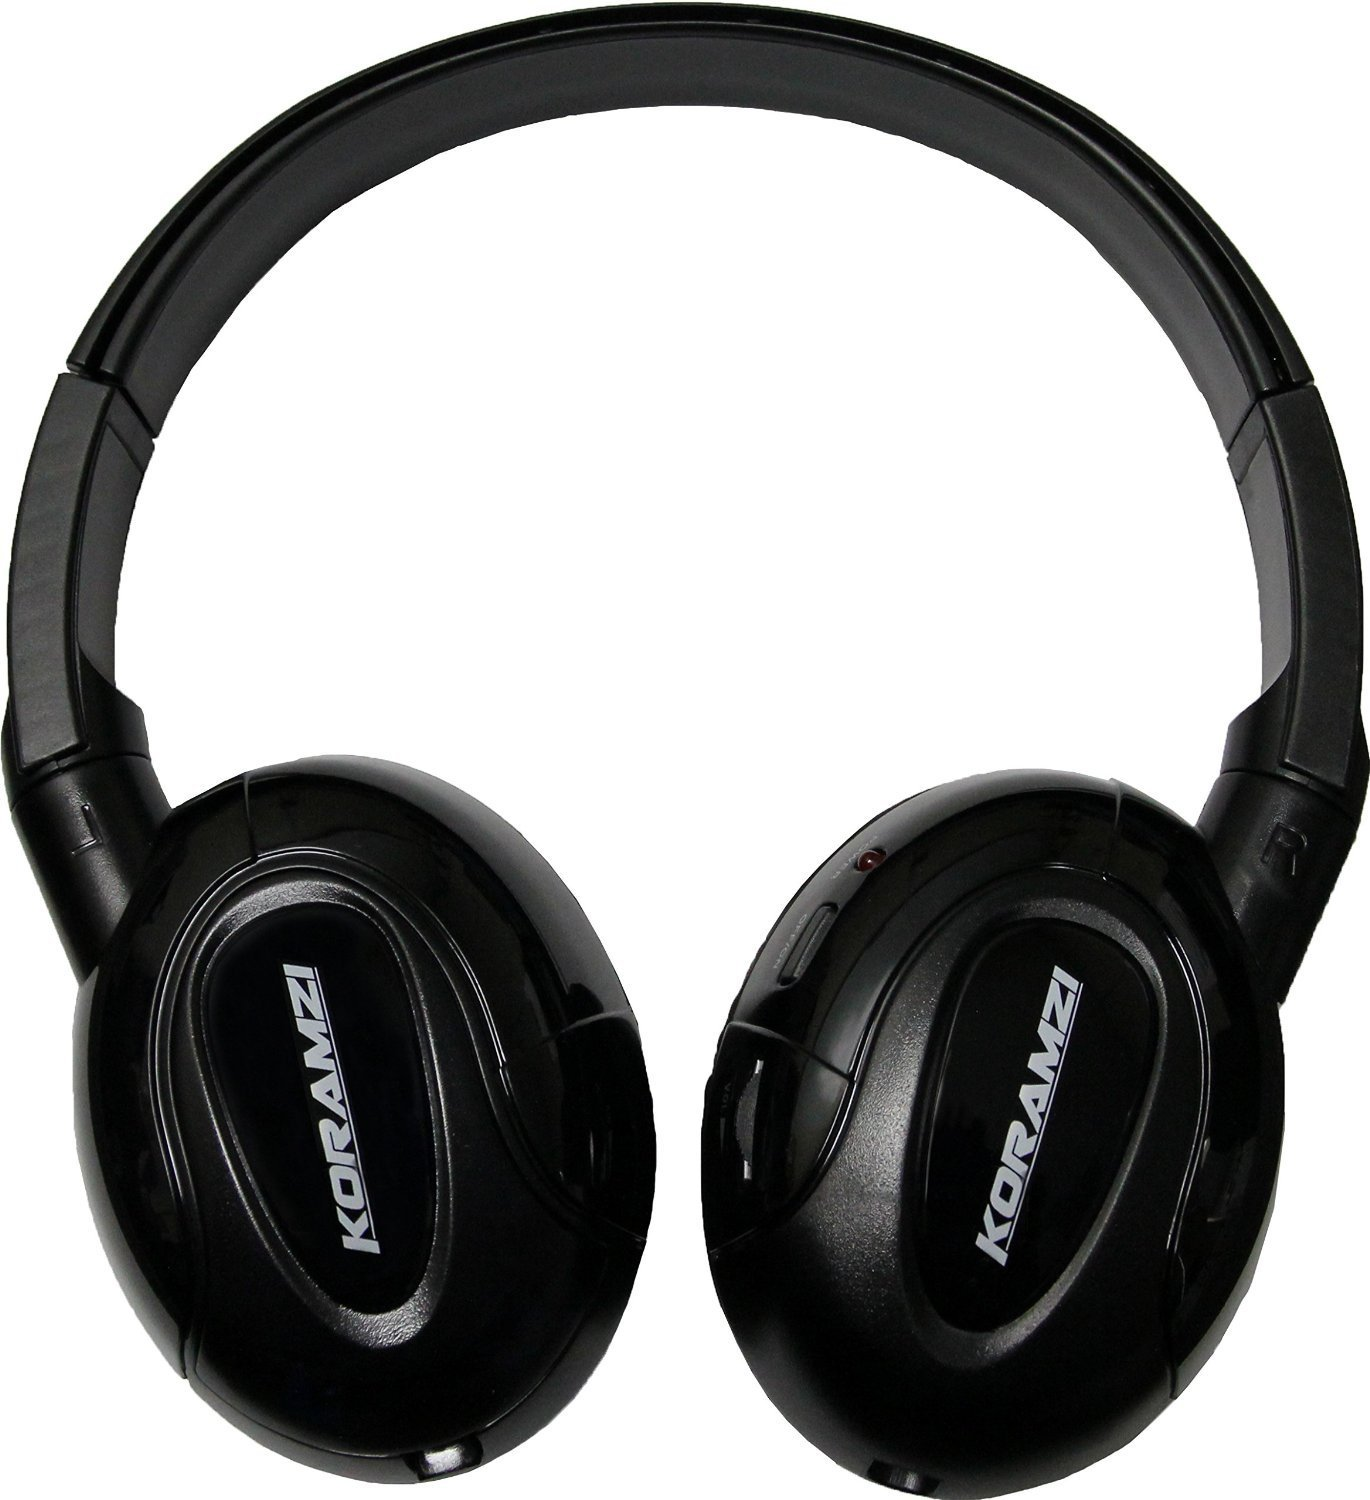 Koramzi IR900 IR Headphones Wireless & Foldable With AUX input designed for In-Car TV, DVD, & Video Listening